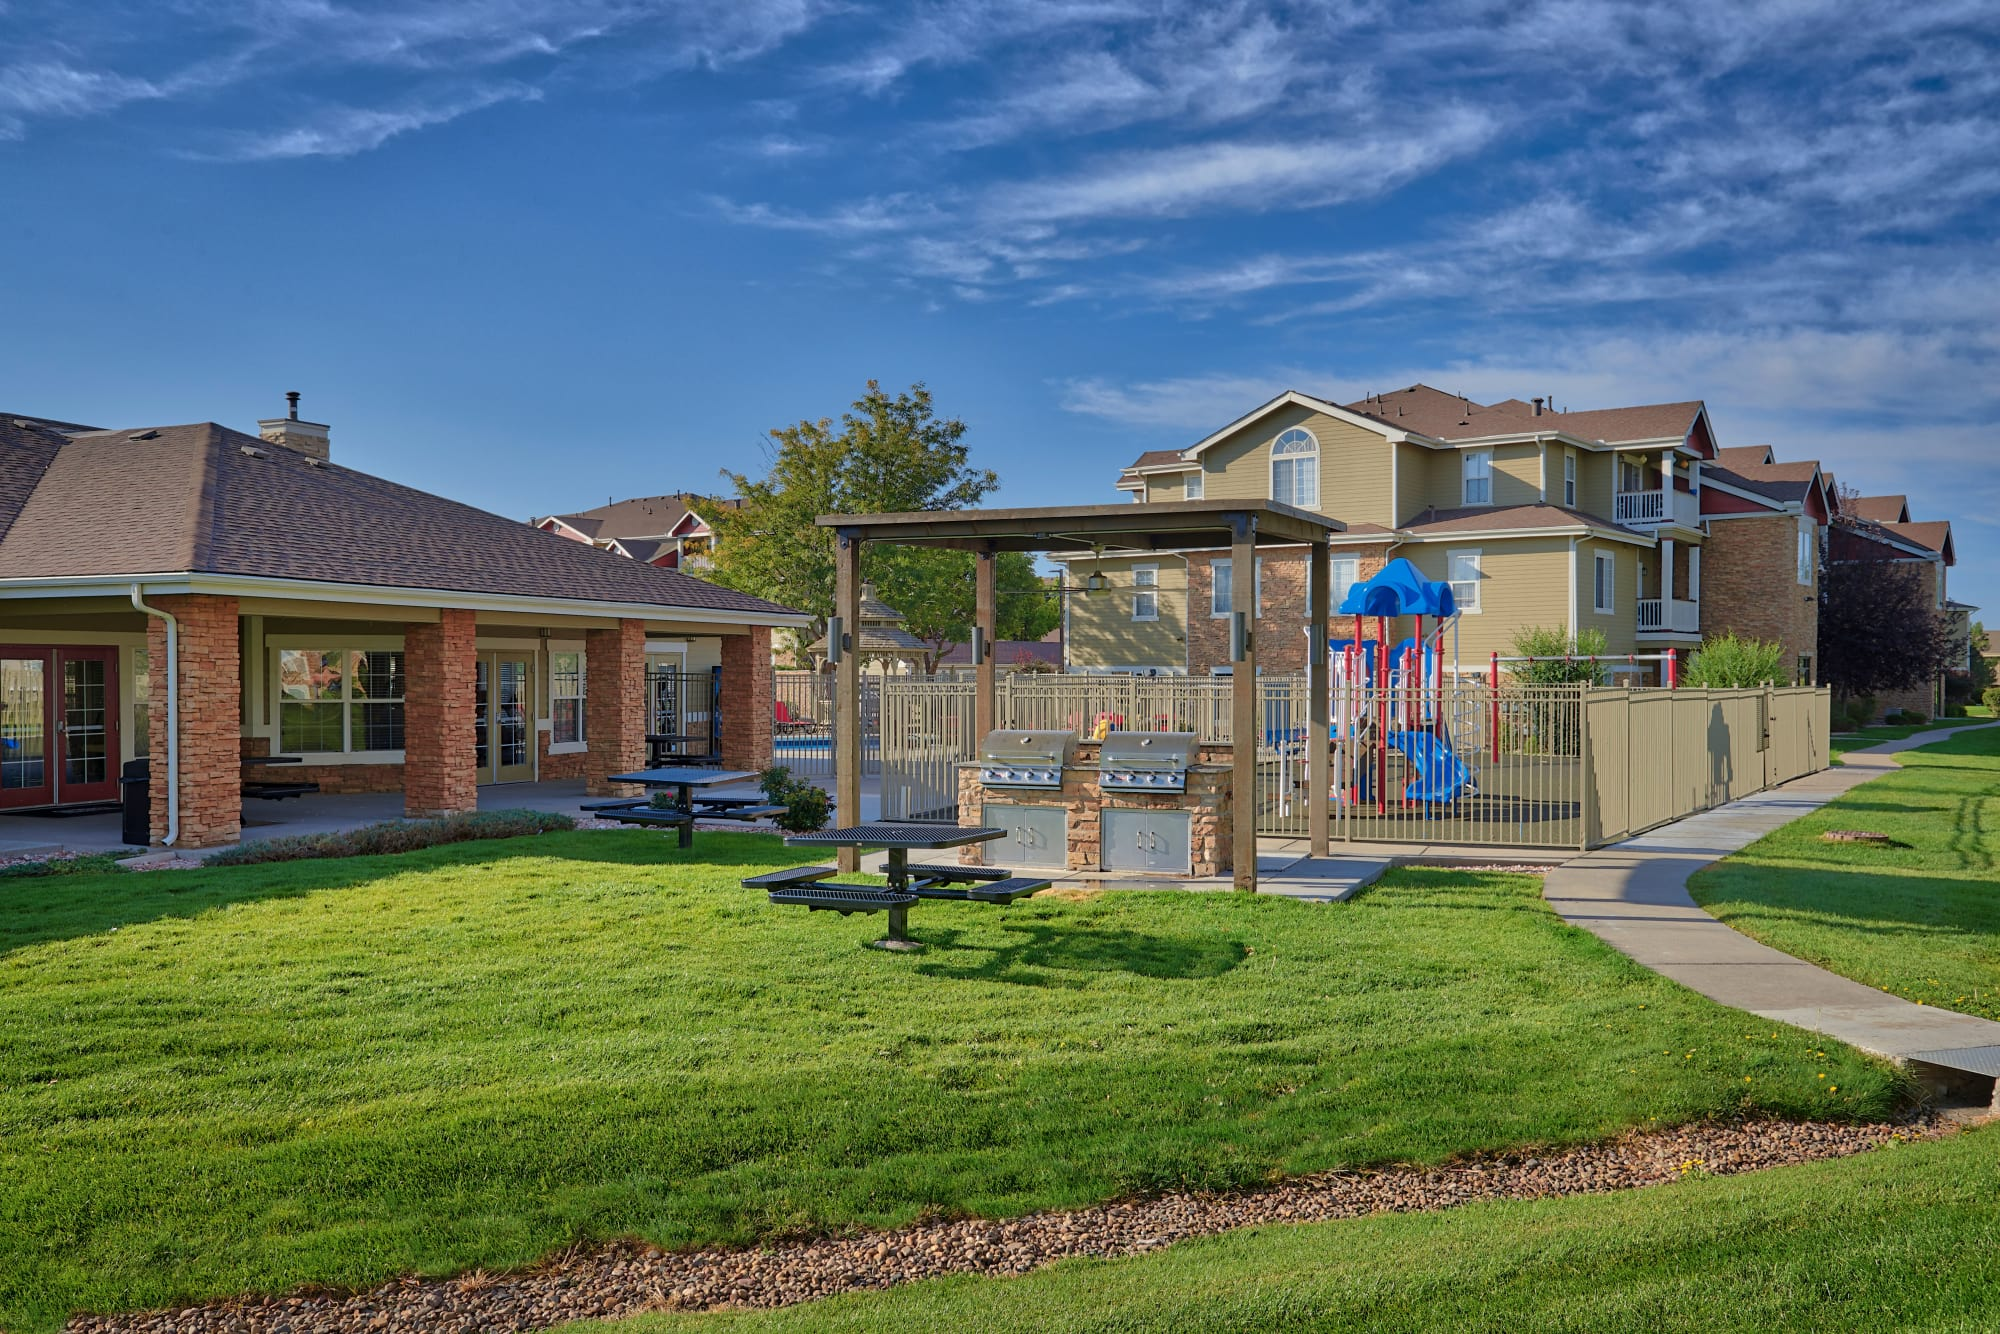 Grilling area surrounded by lush green grass at Westridge Apartments in Aurora, Colorado